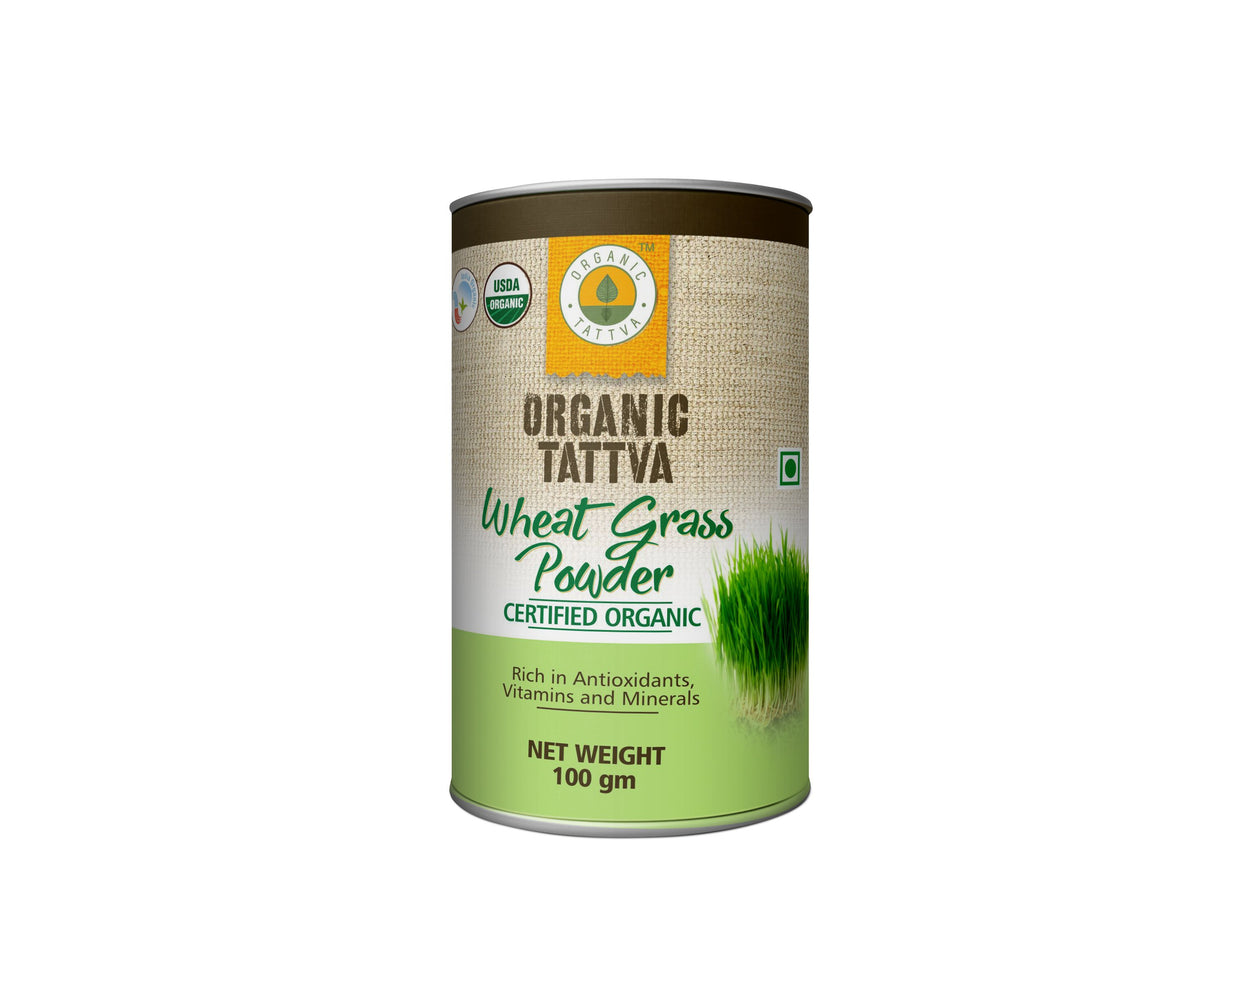 Organic Tattva Wheat Grass Powder - NutraC - Health & Nutrition Store